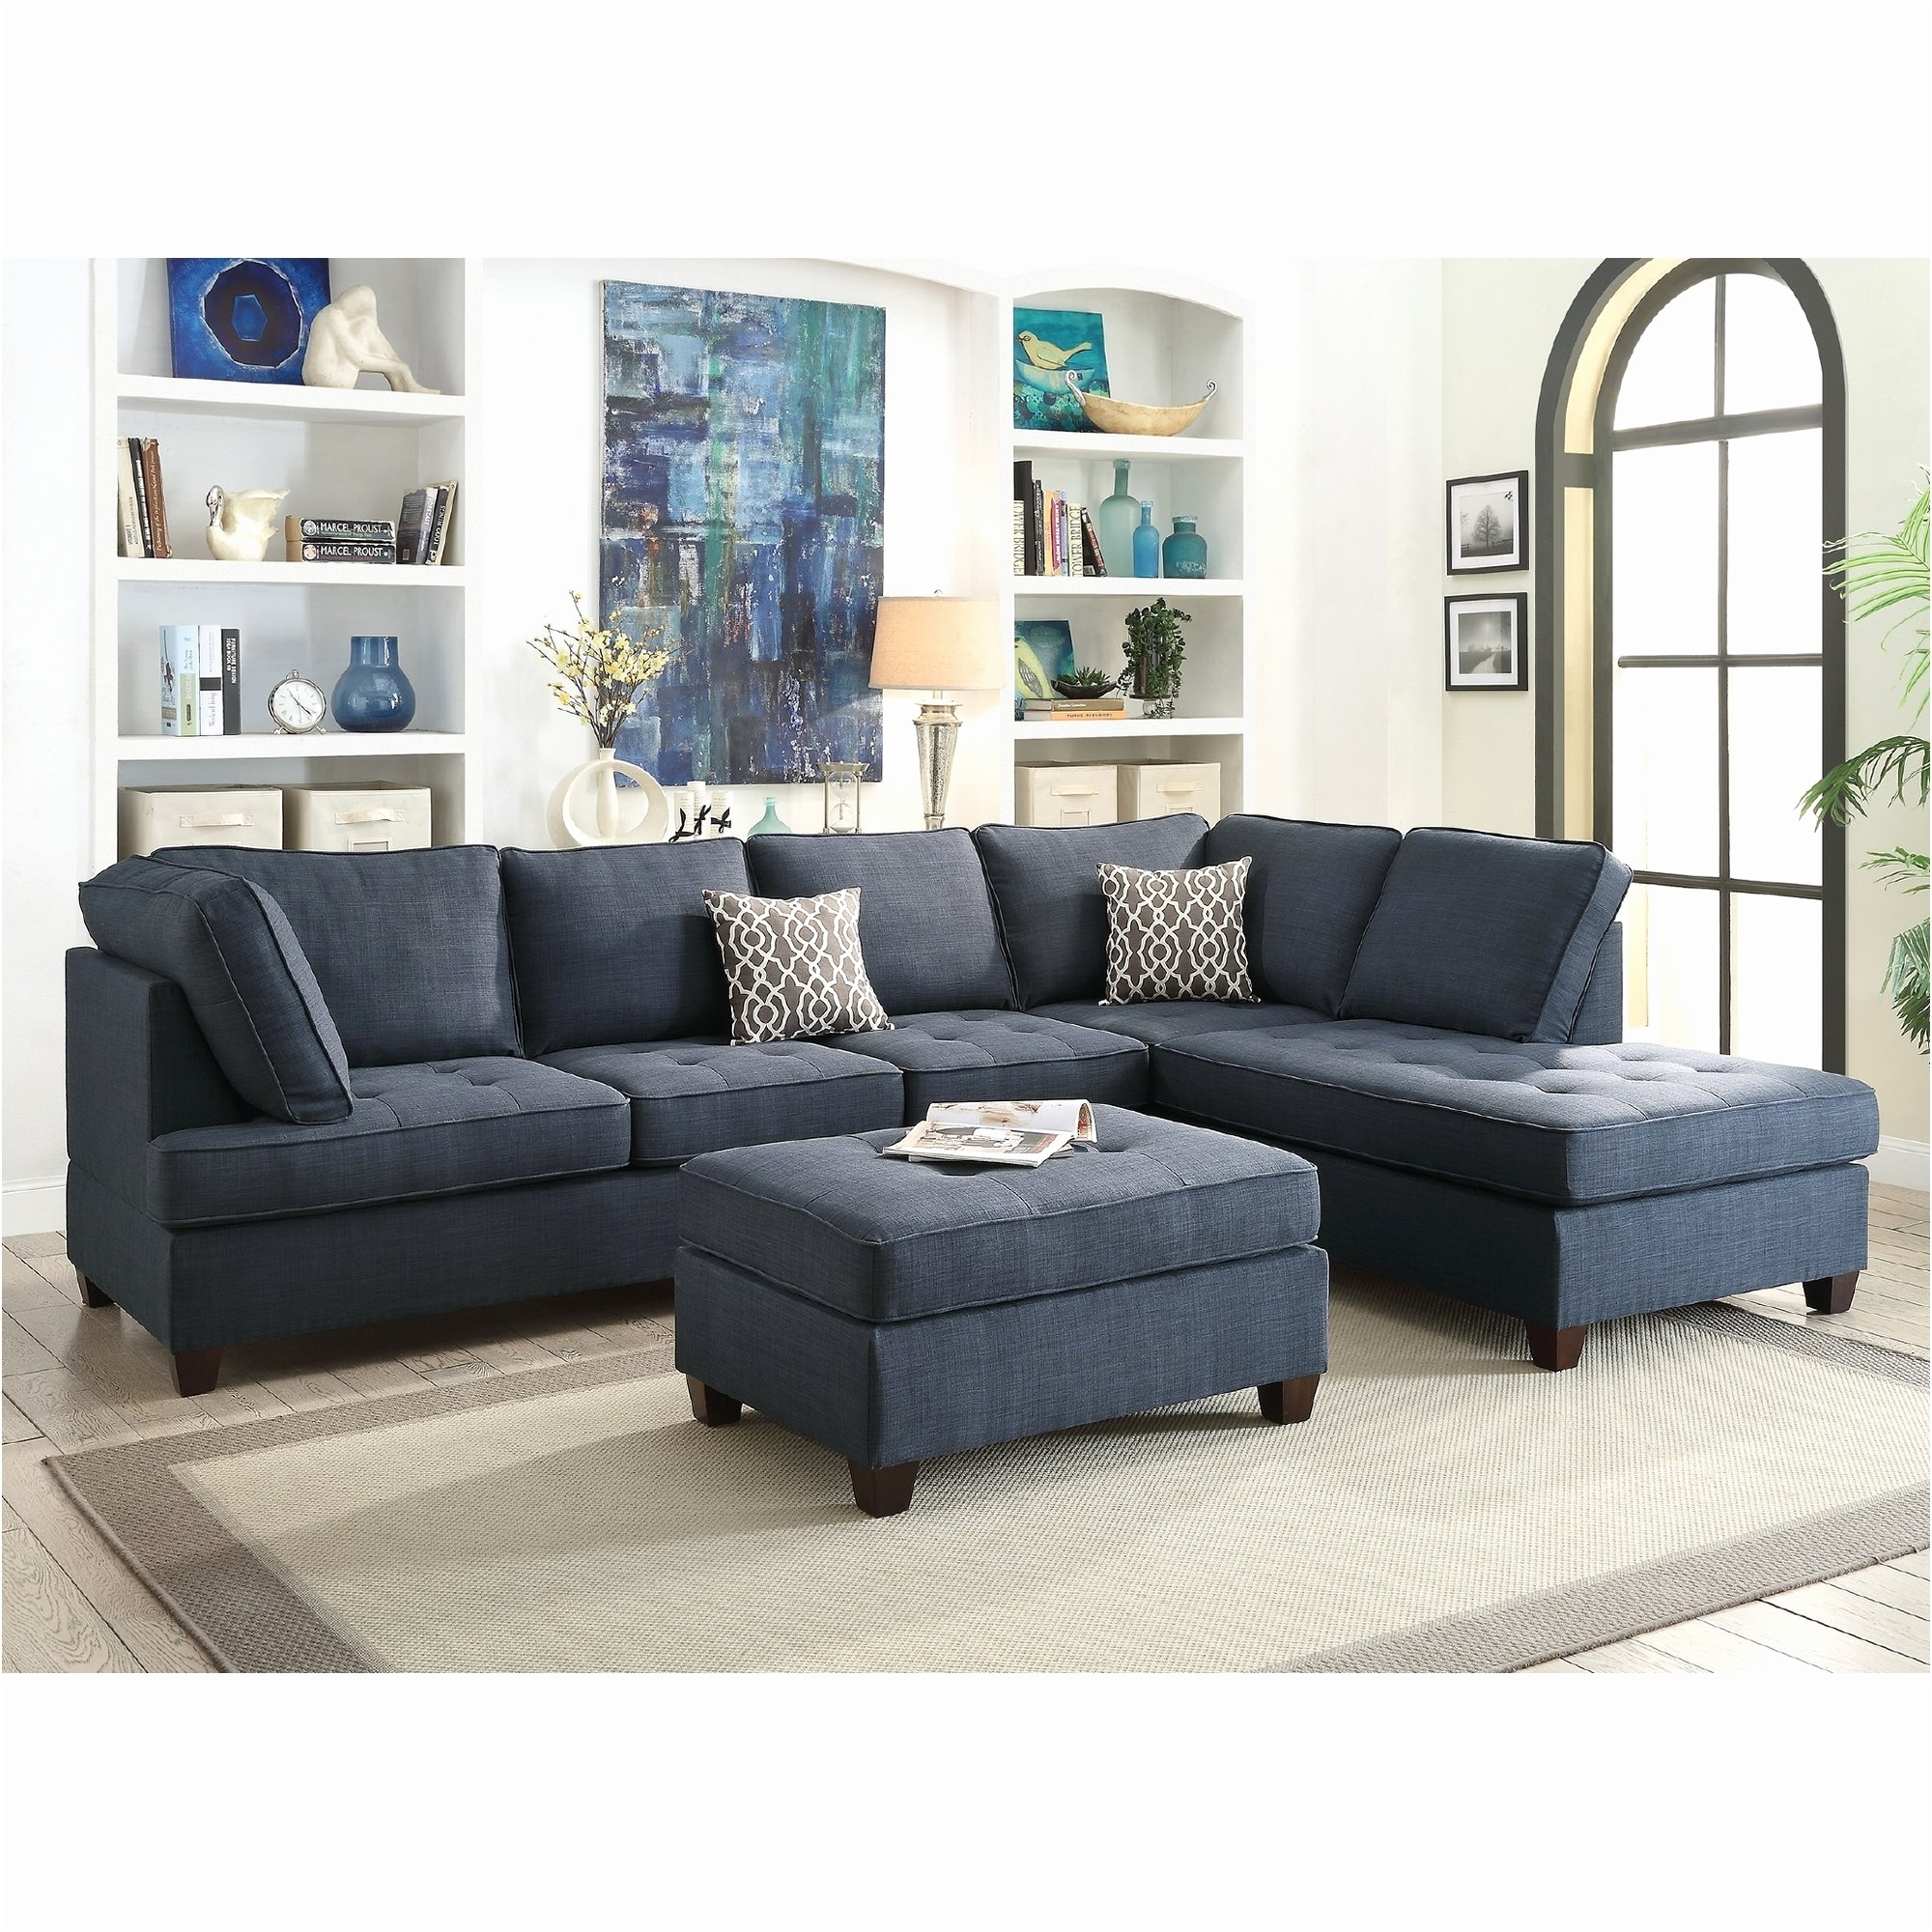 Catosfera With Regard To Most Recent Jacksonville Fl Sectional Sofas (View 15 of 20)